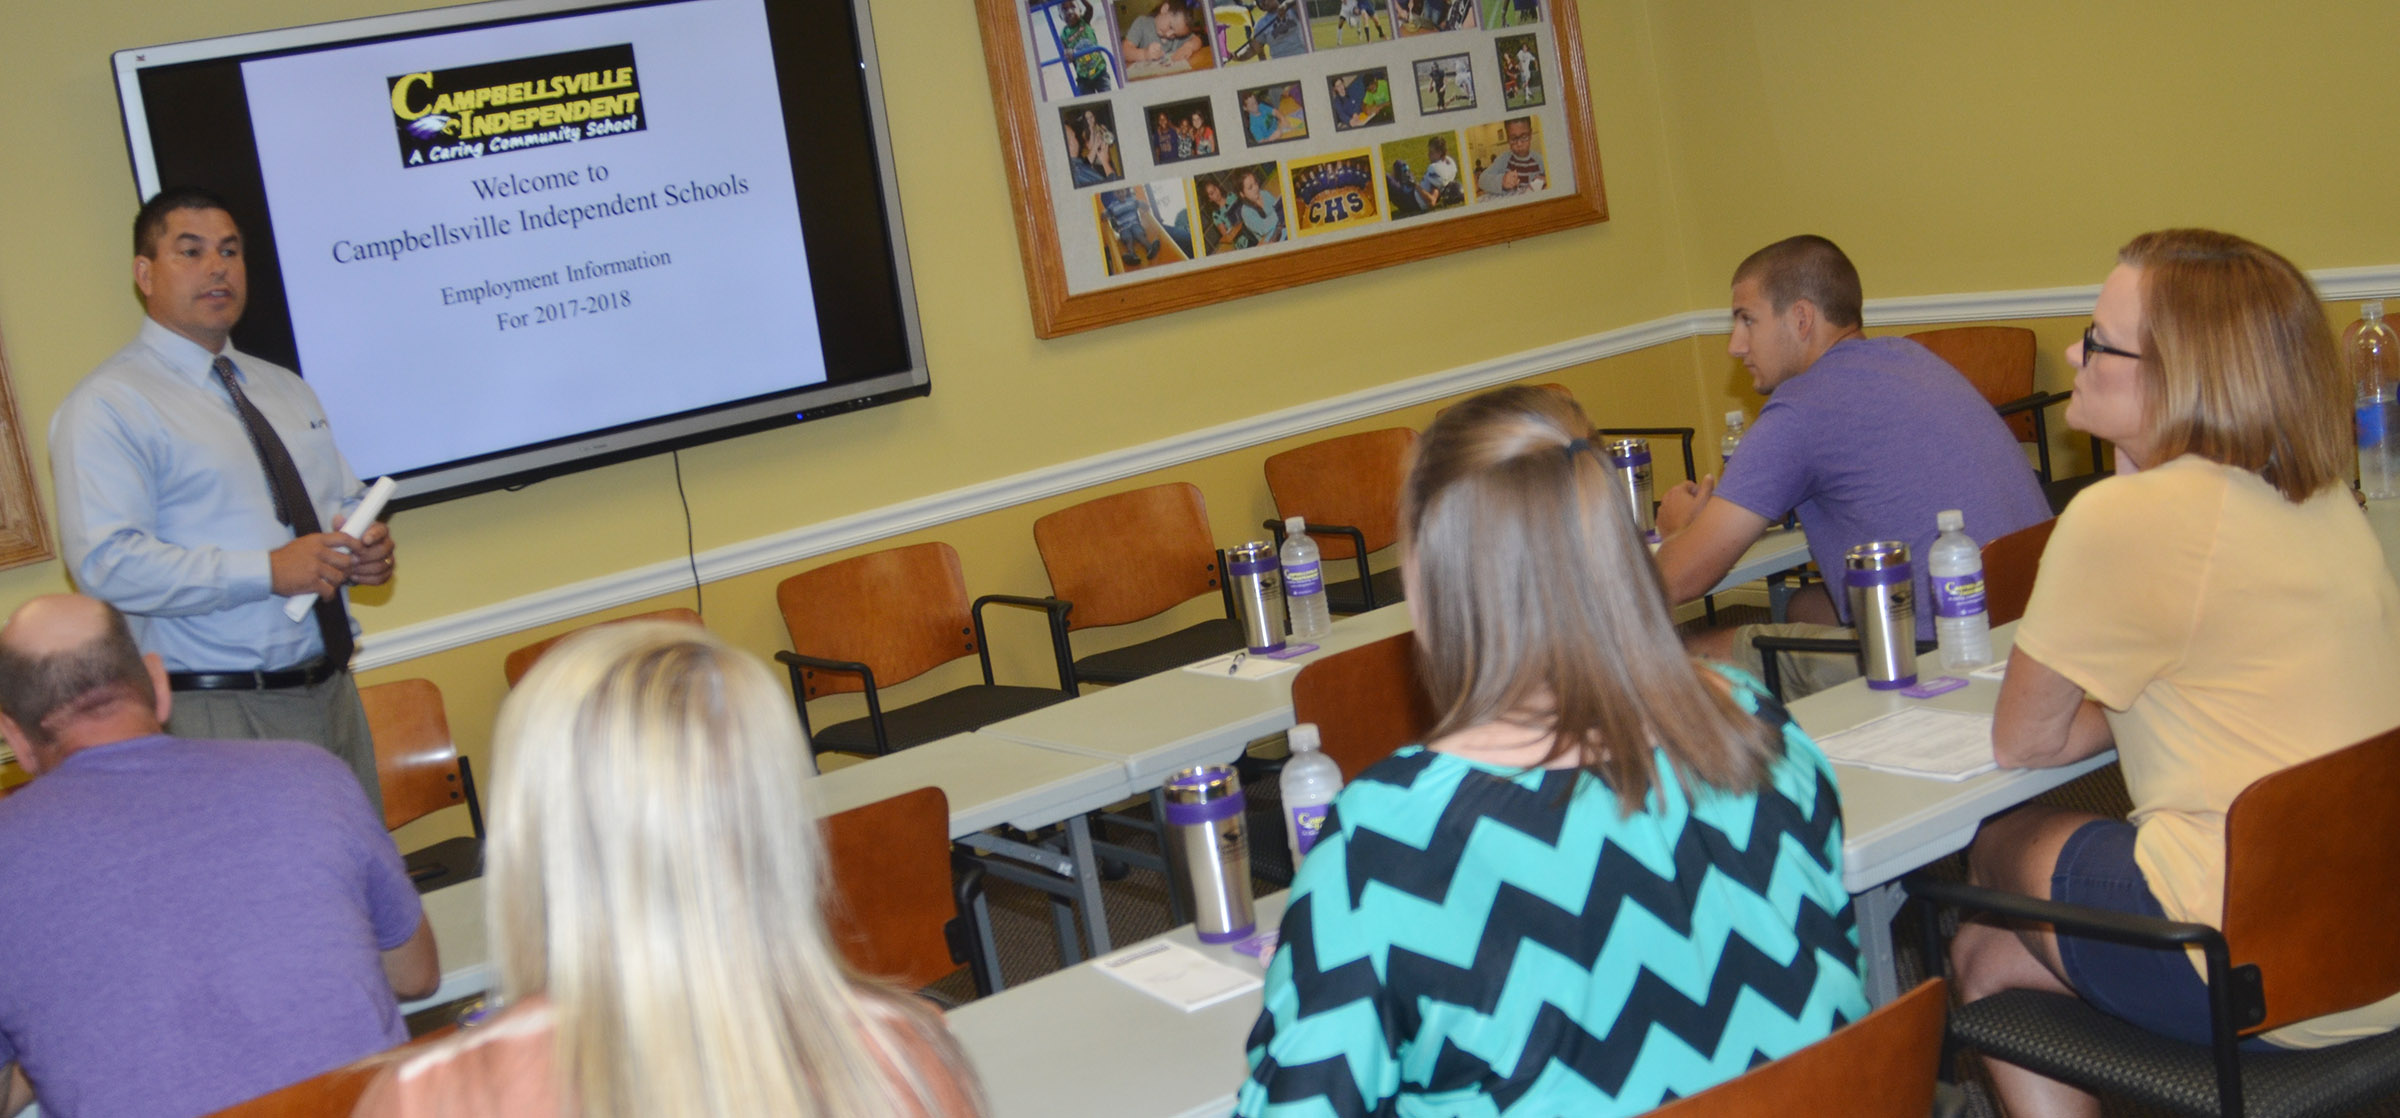 Campbellsville Independent Schools Superintendent Kirby Smith talks to new employees at an orientation on Thursday, Aug. 3.